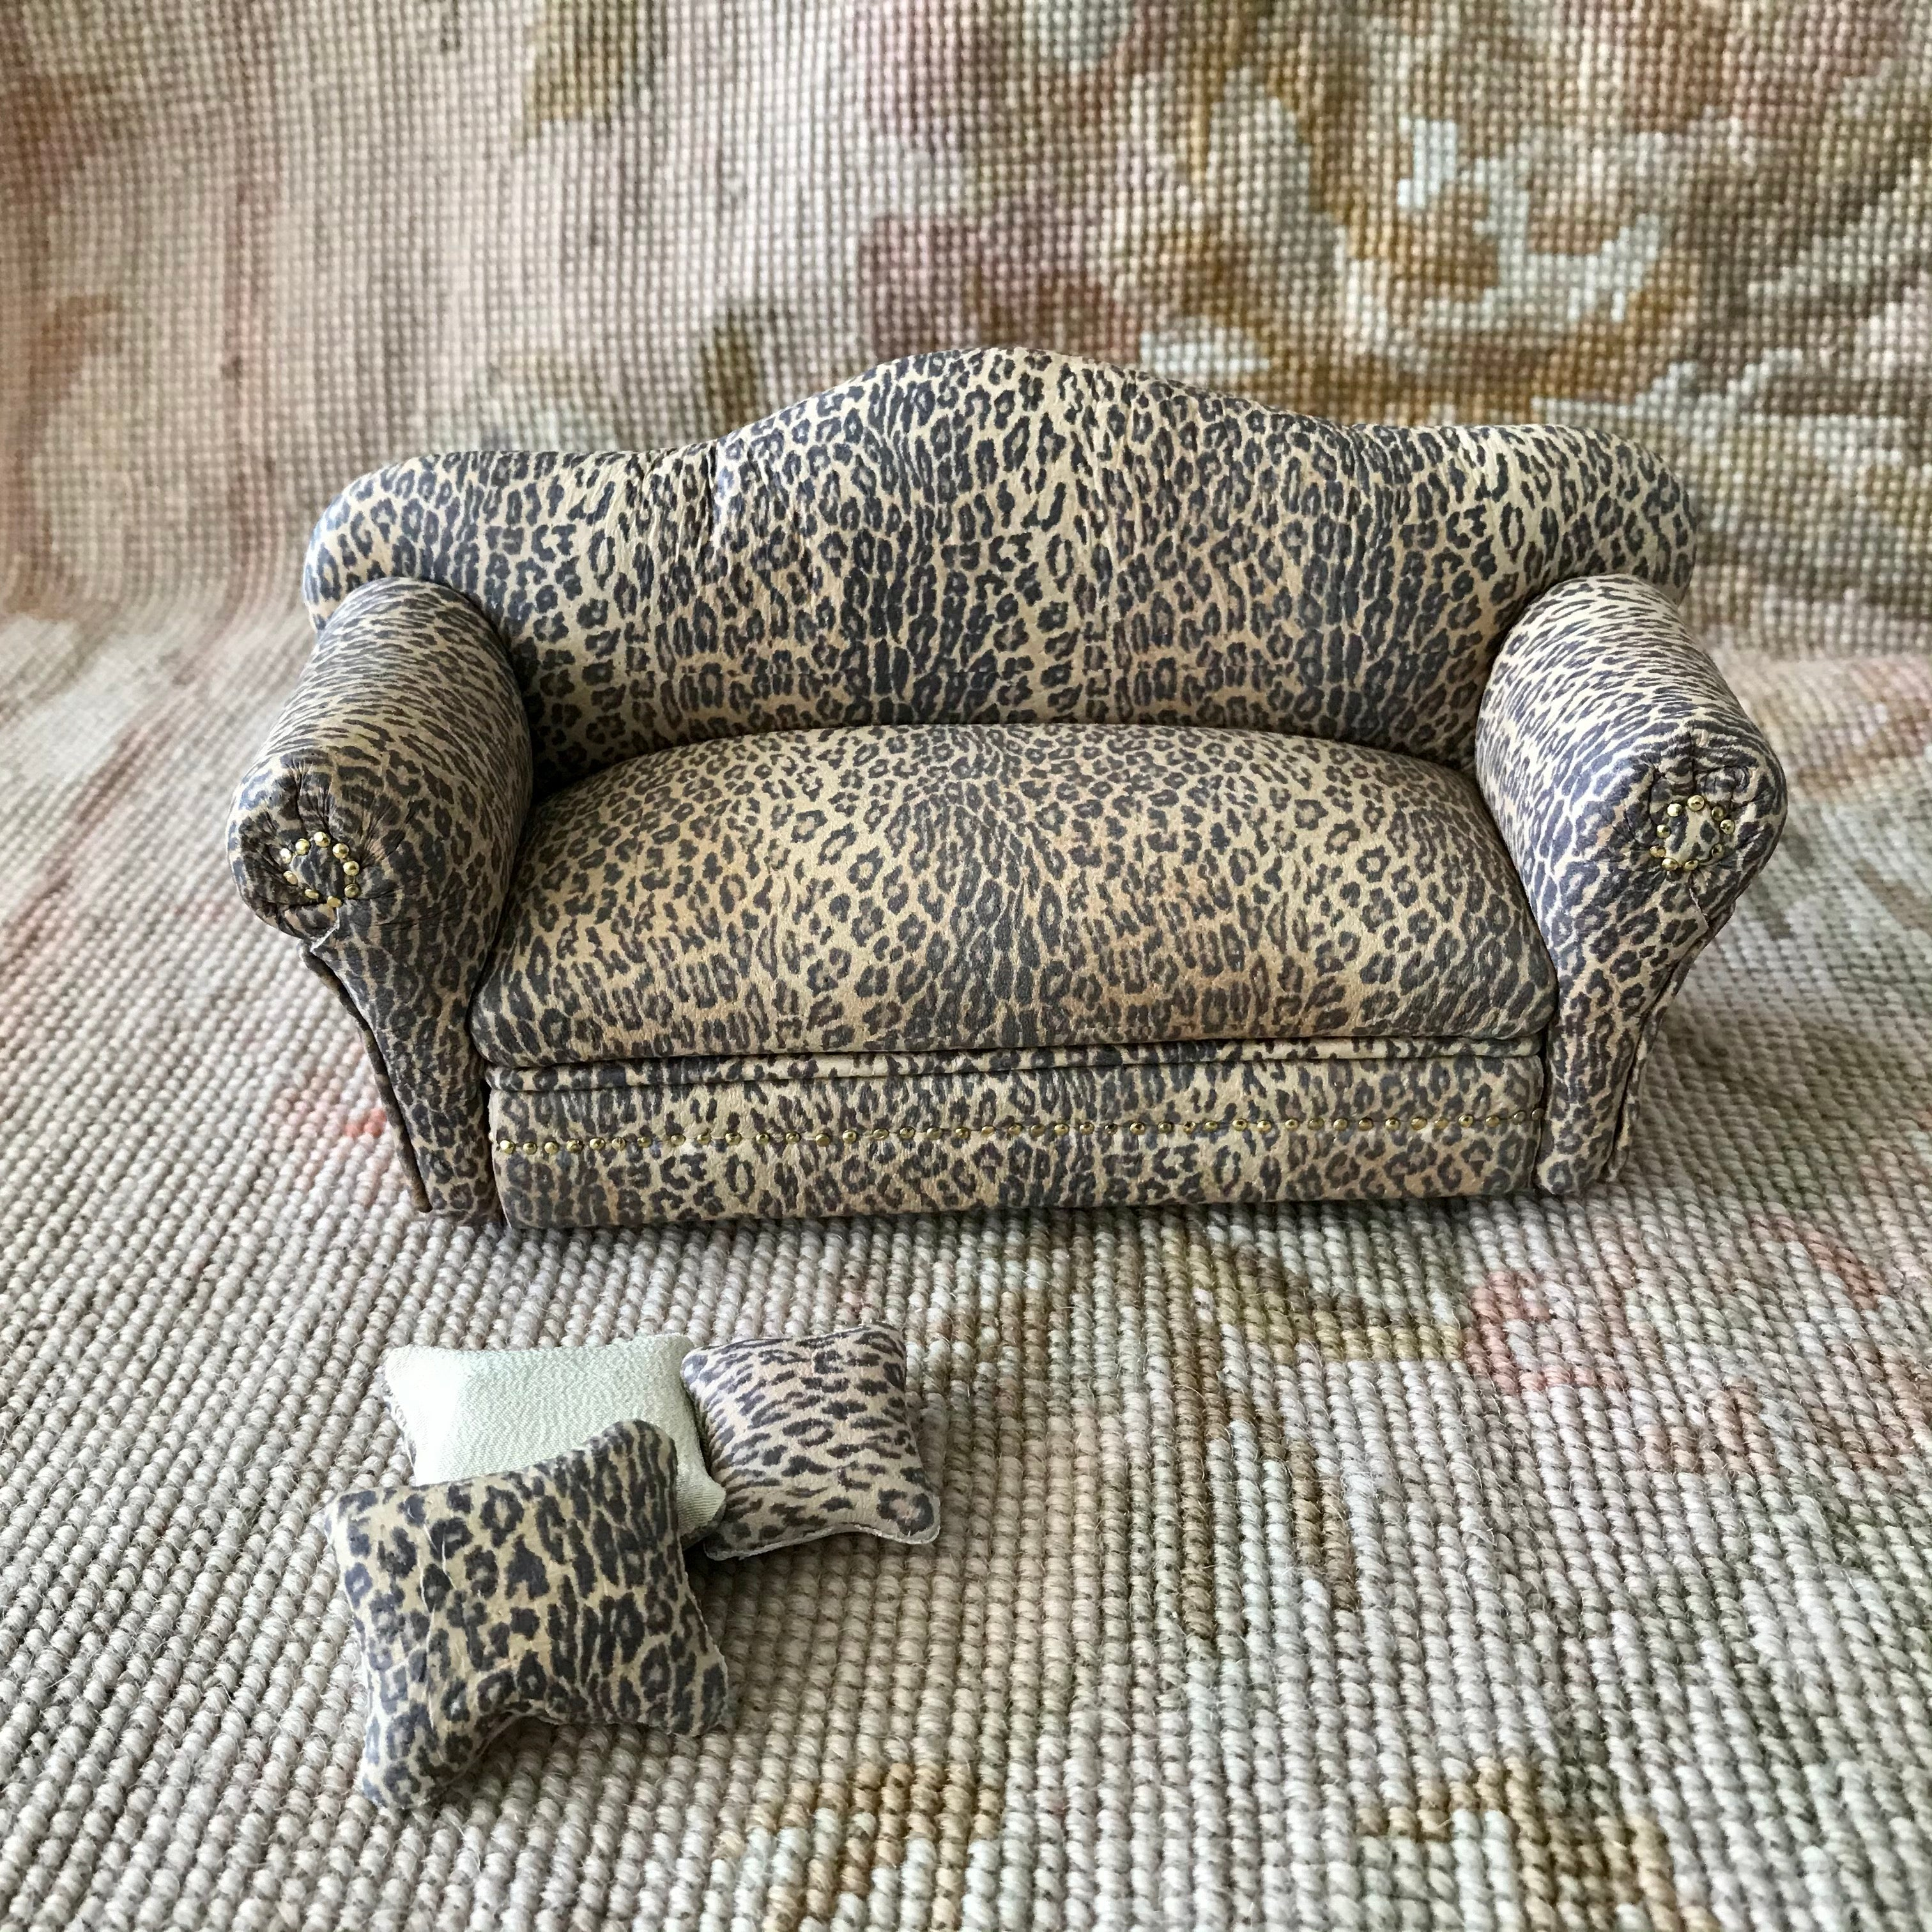 Sofa Couch Lounge Divan Settee Leopard Leather with Pillows 1:12 Scale Dollhouse Miniature